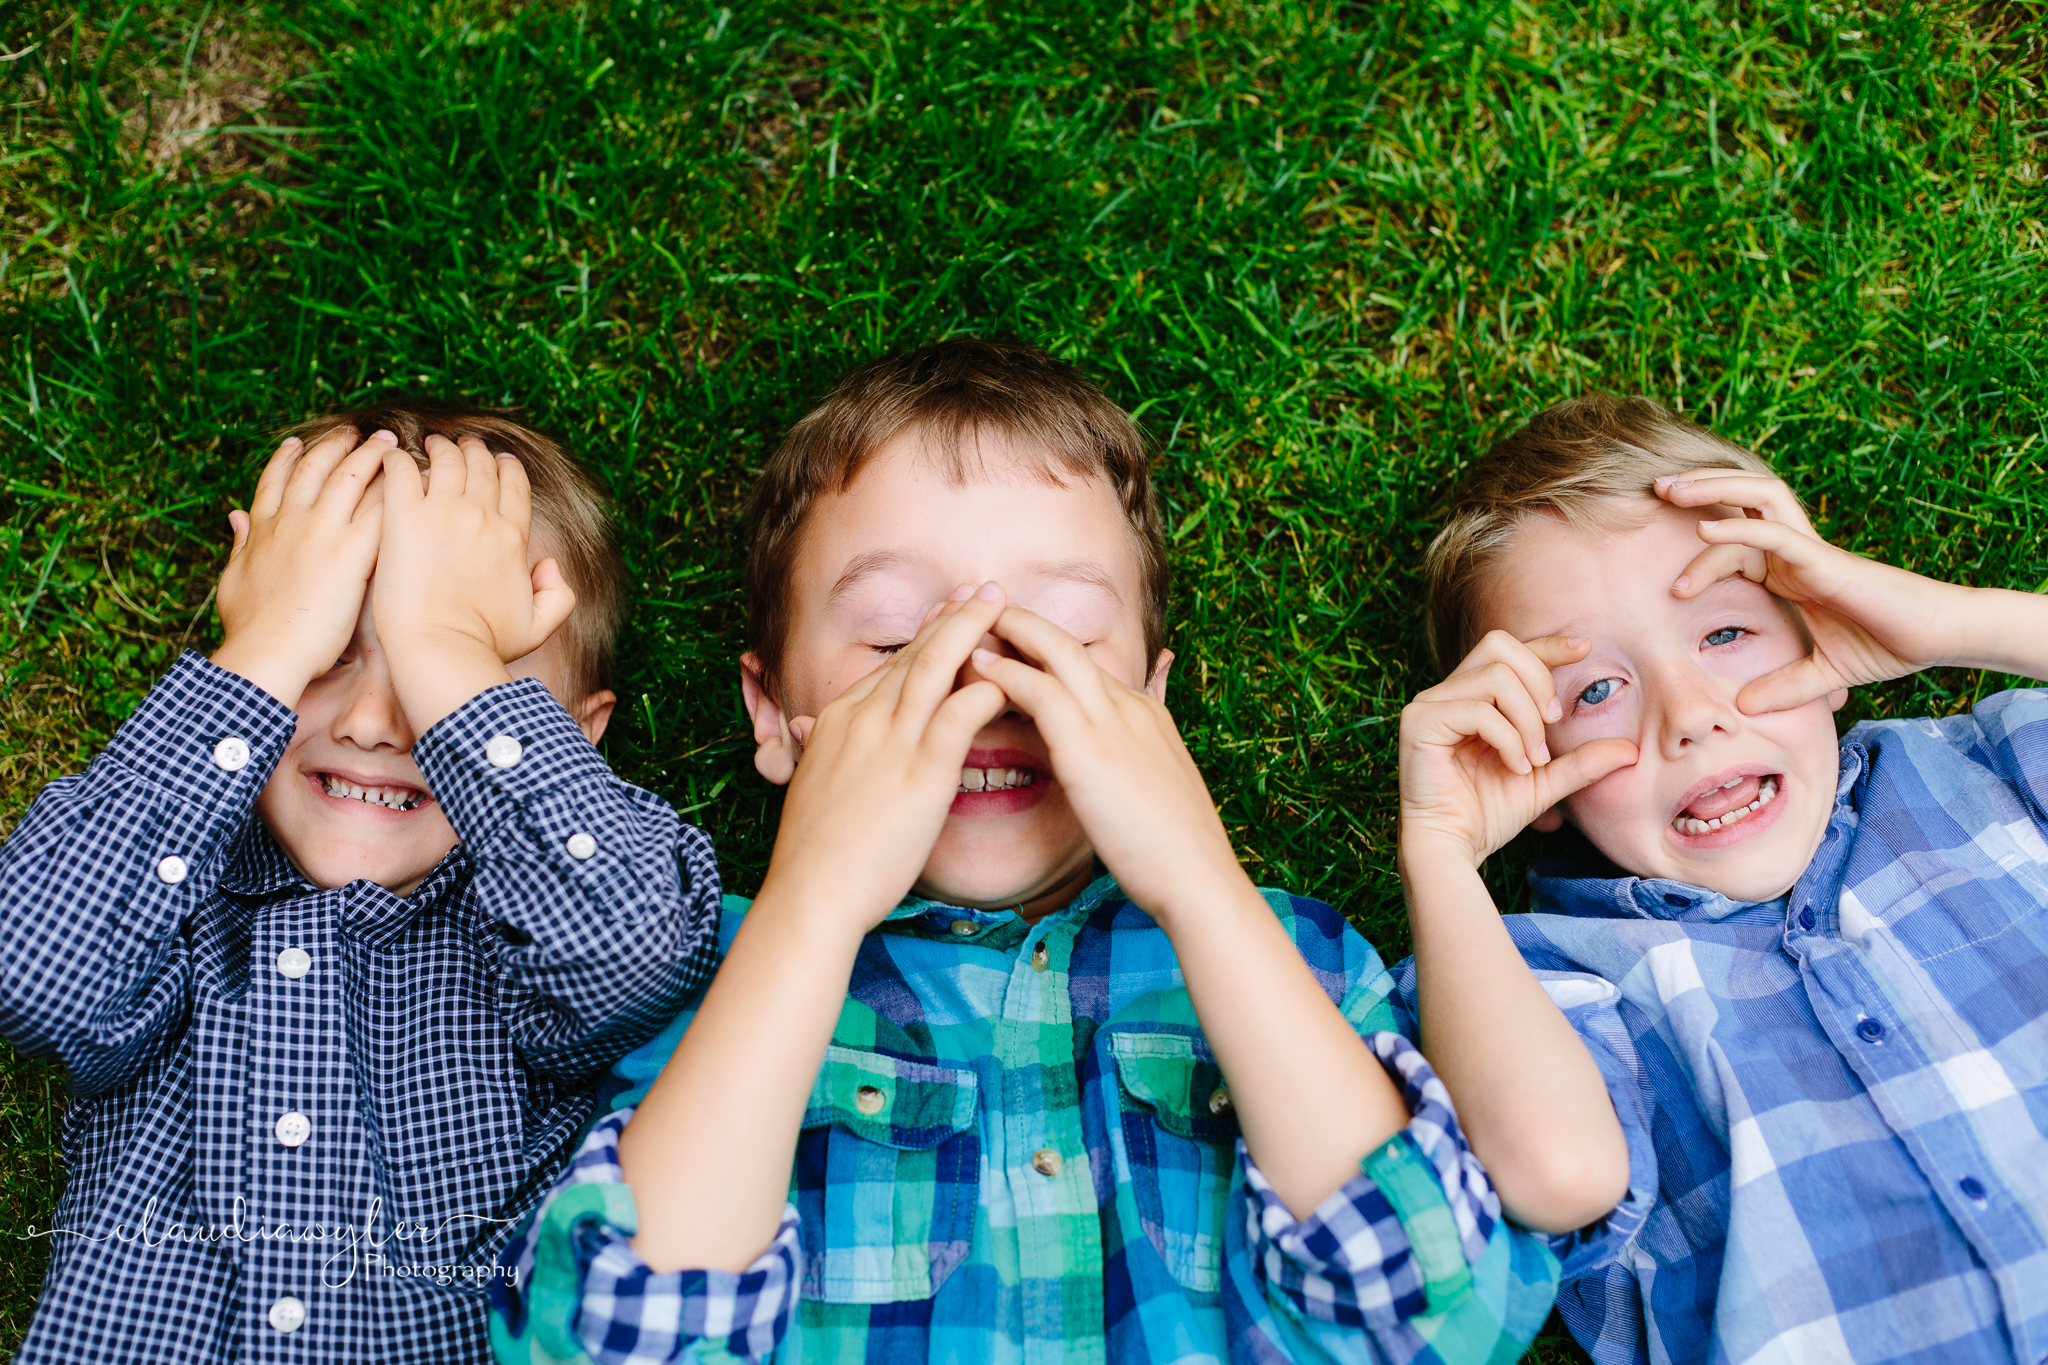 3 young boys playing in grass hidingn faces